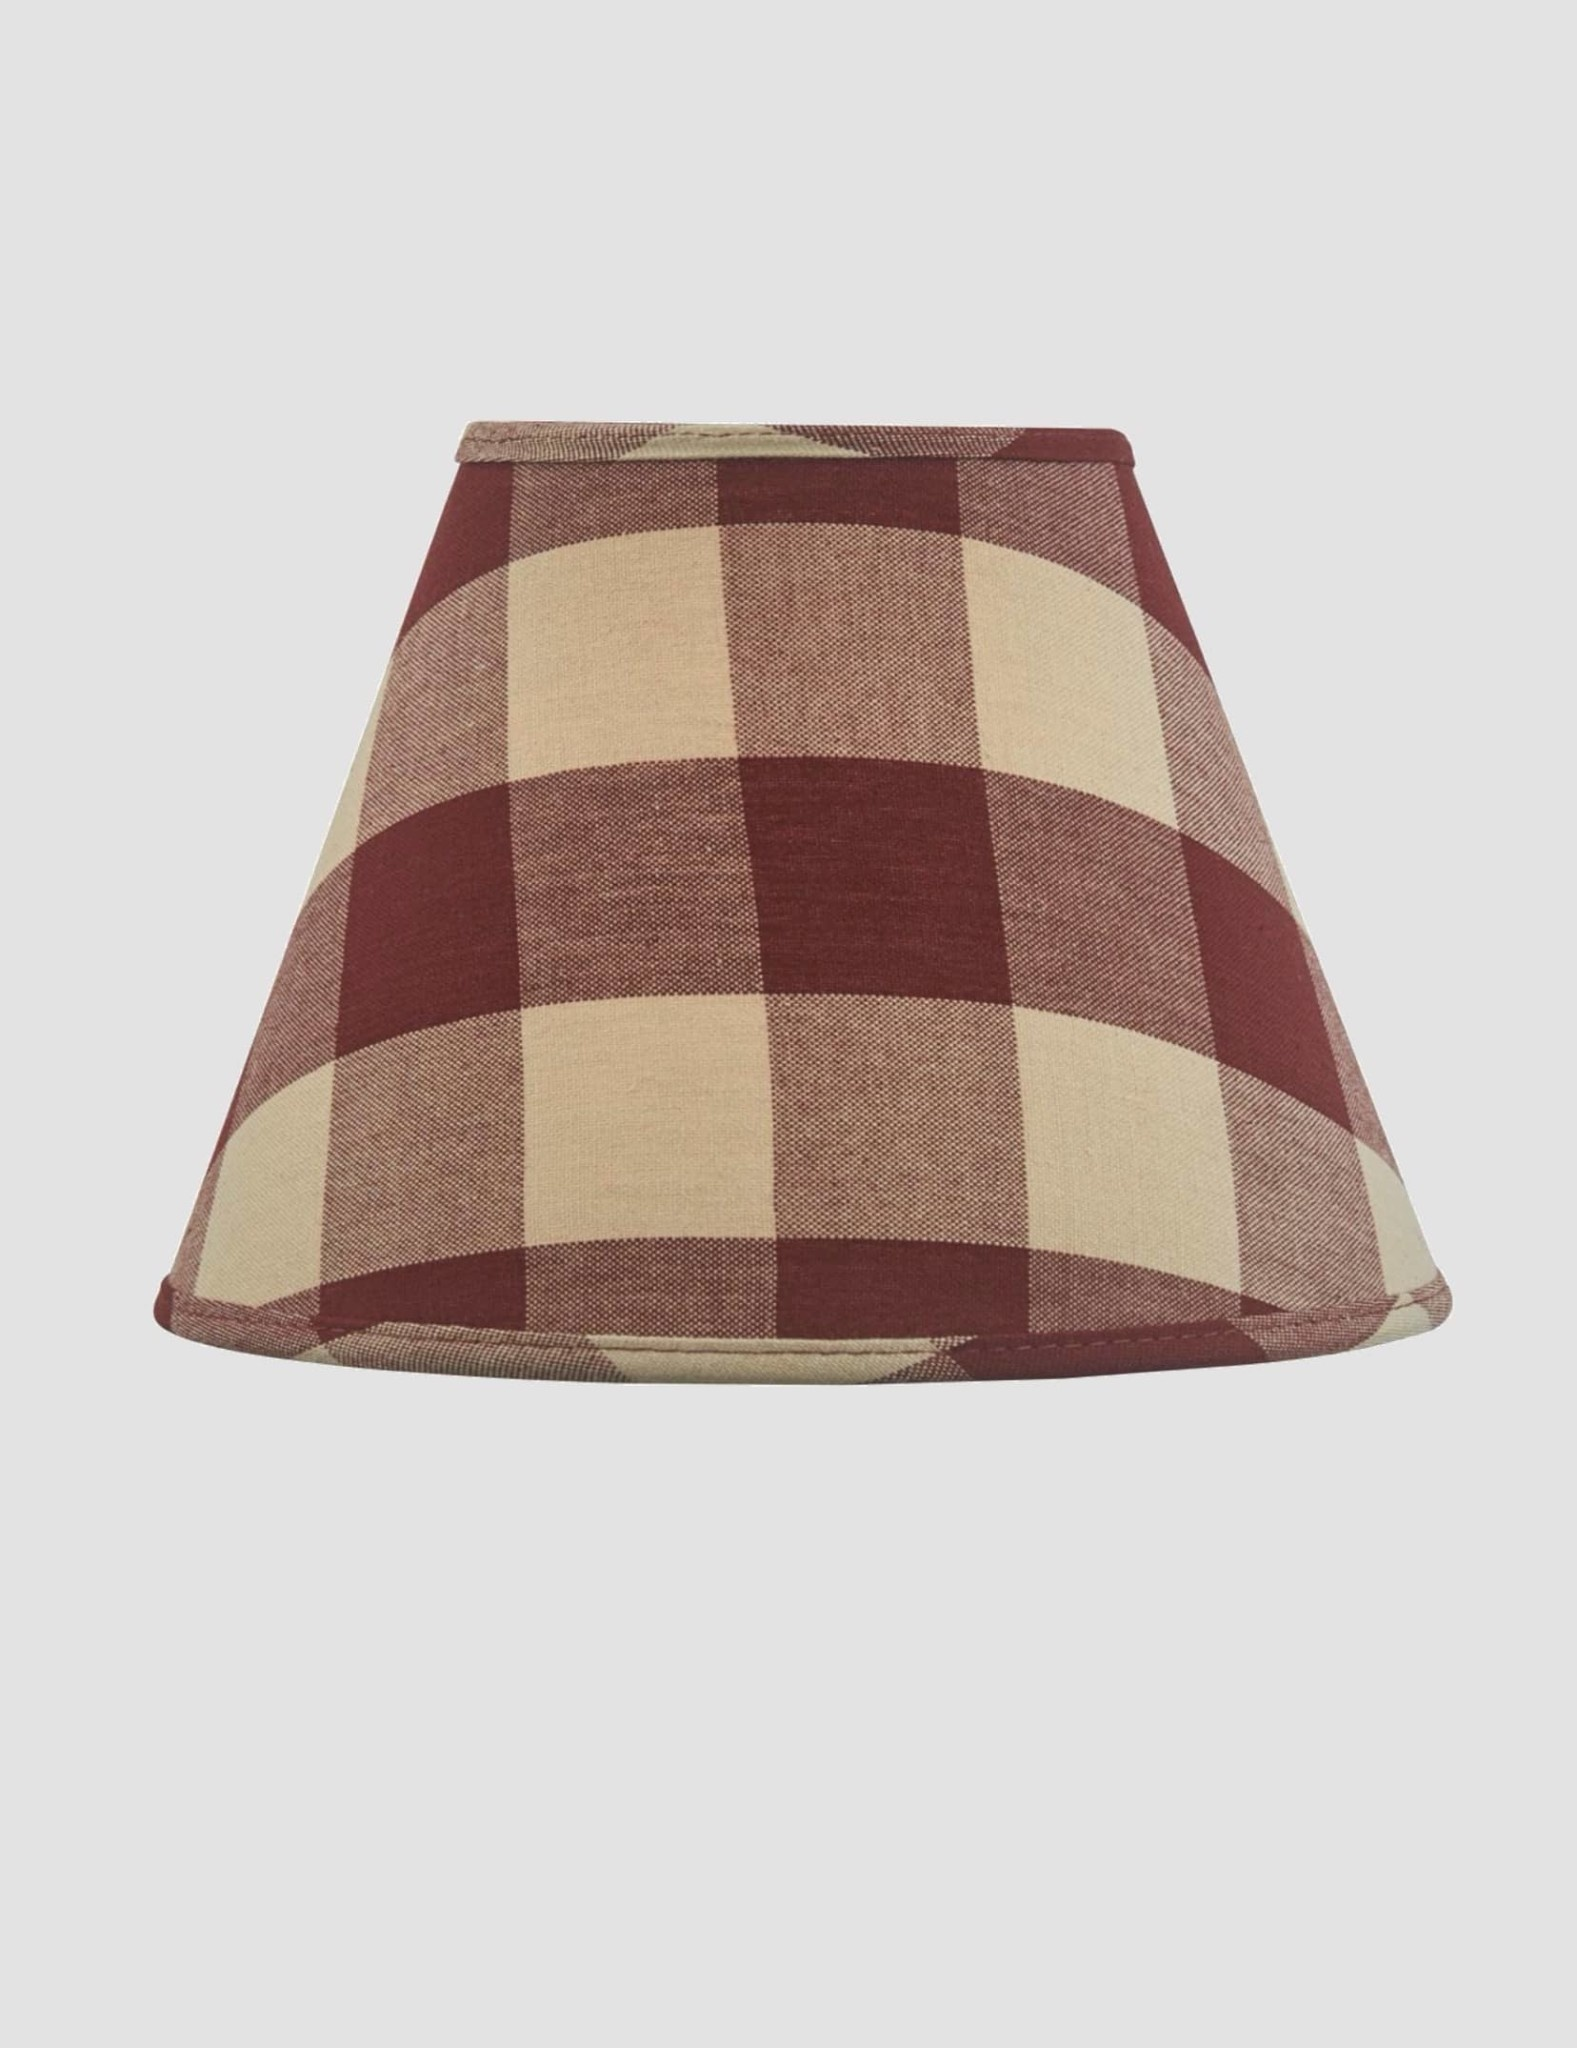 Park Designs Wicklow Check Lampshade - Garnet - 10""